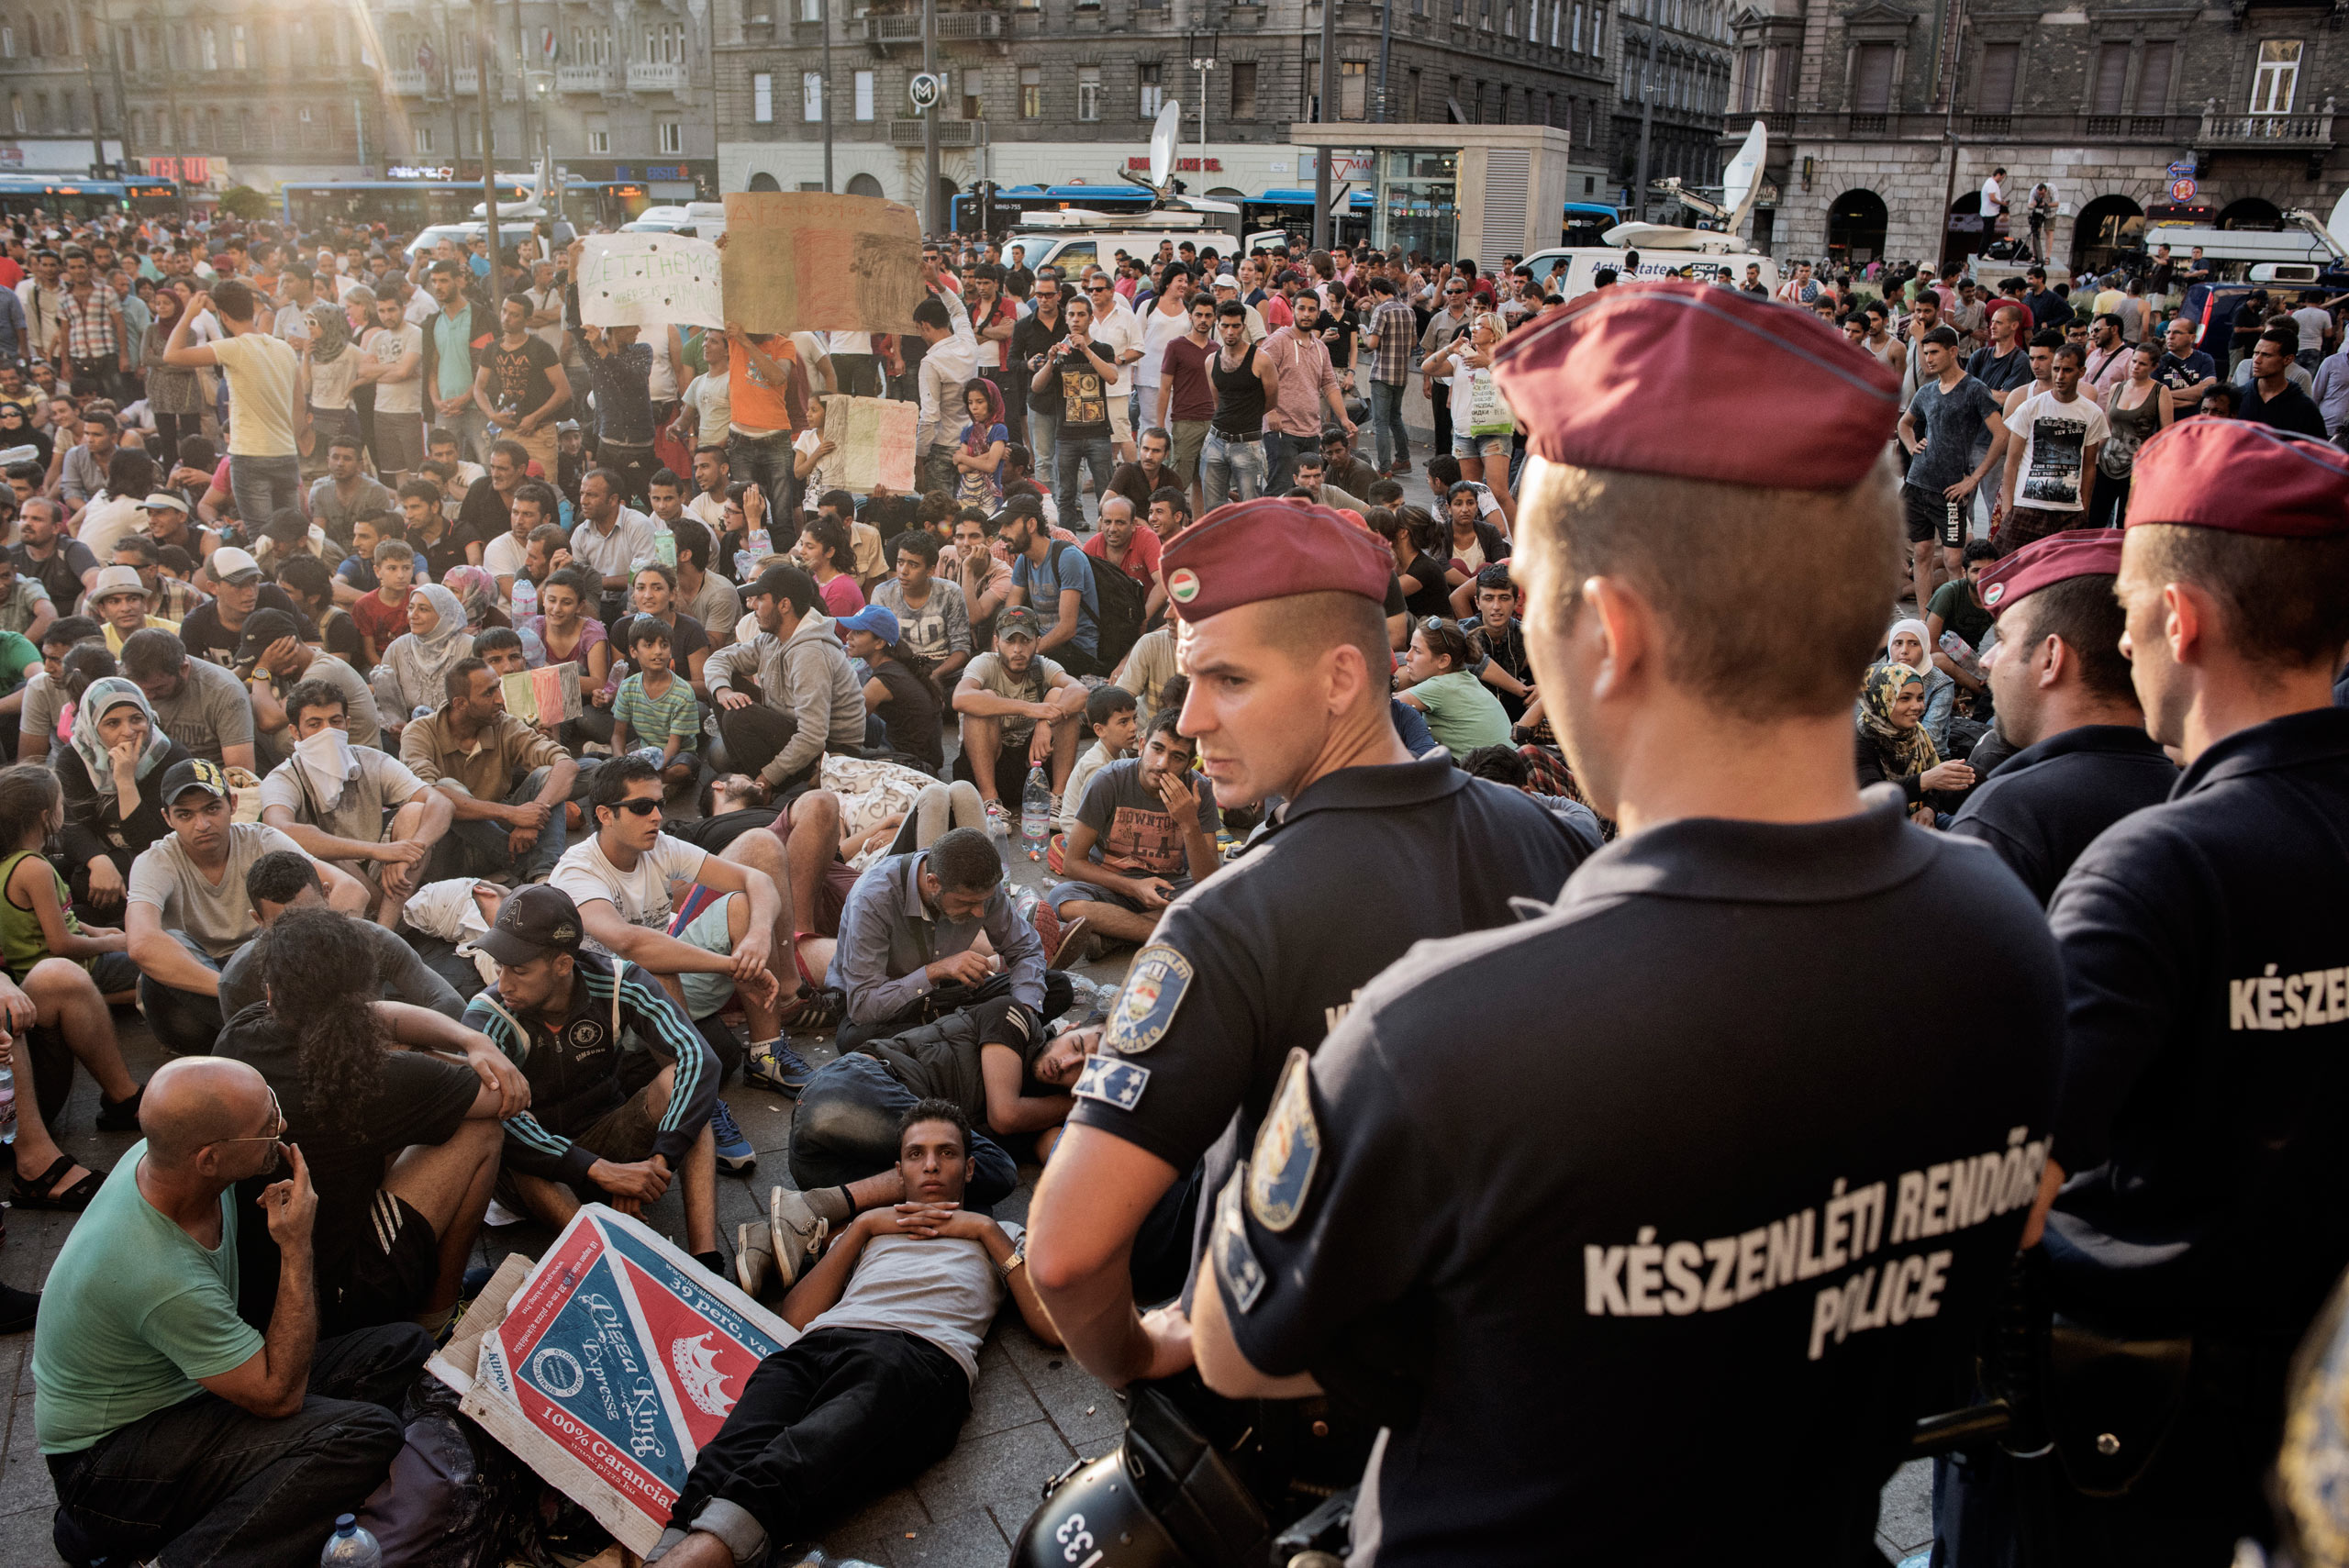 Migrants protest for the right to travel to Germany and claim asylum at the Keleti train station in Budapest which was temporarily closed. Sept. 1, 2015.